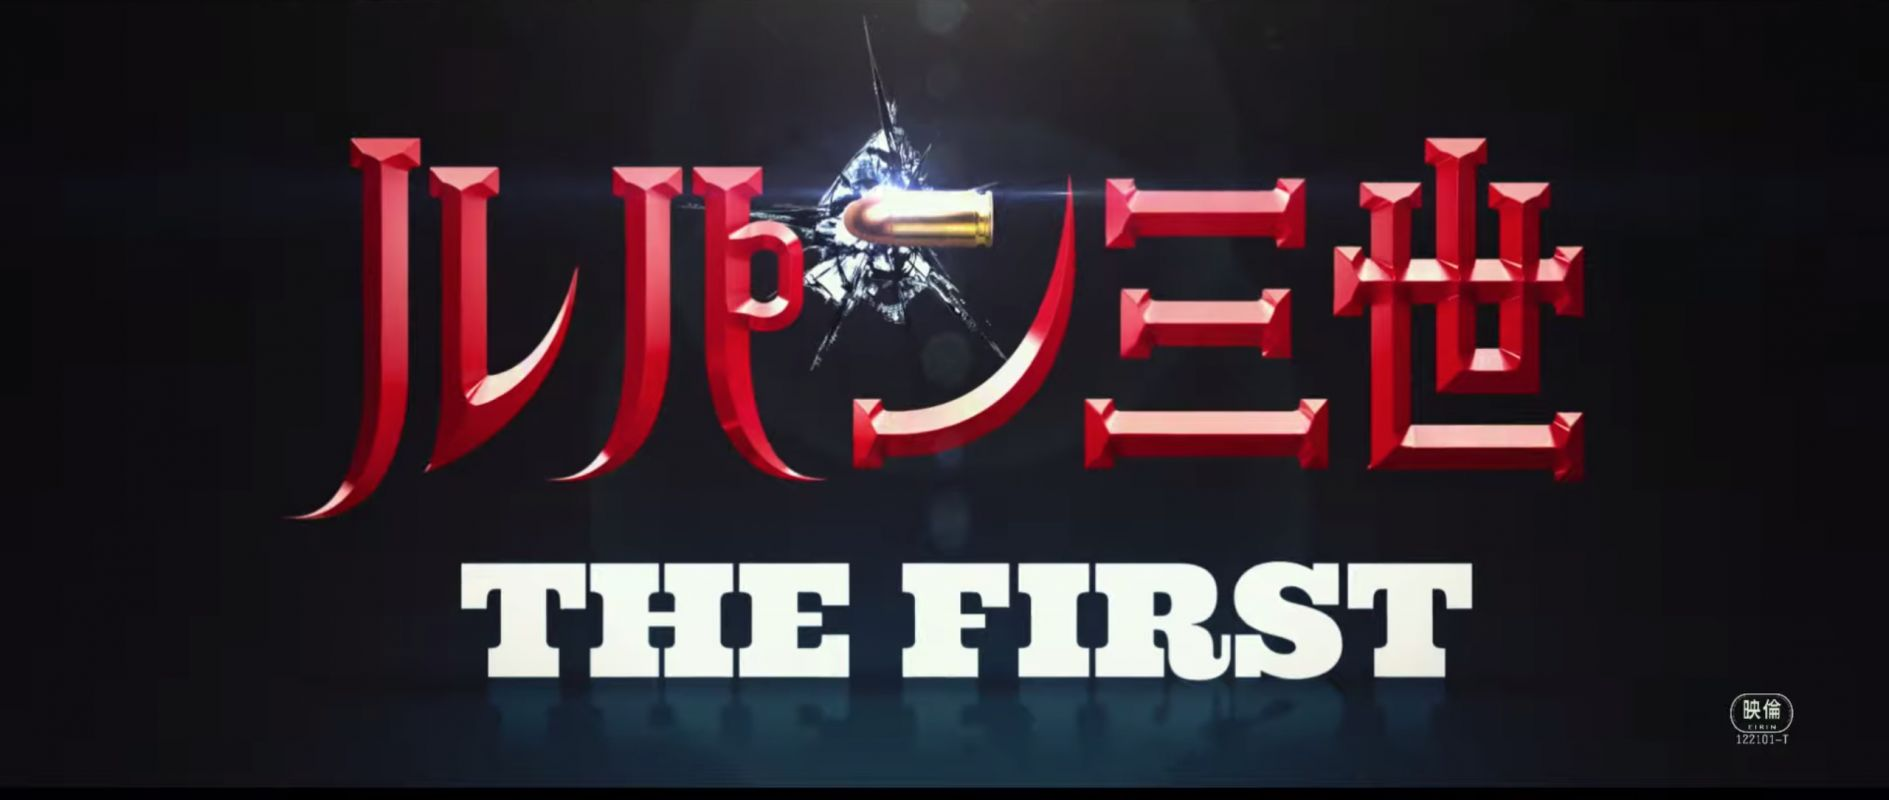 Premier trailer pour Lupin III The First